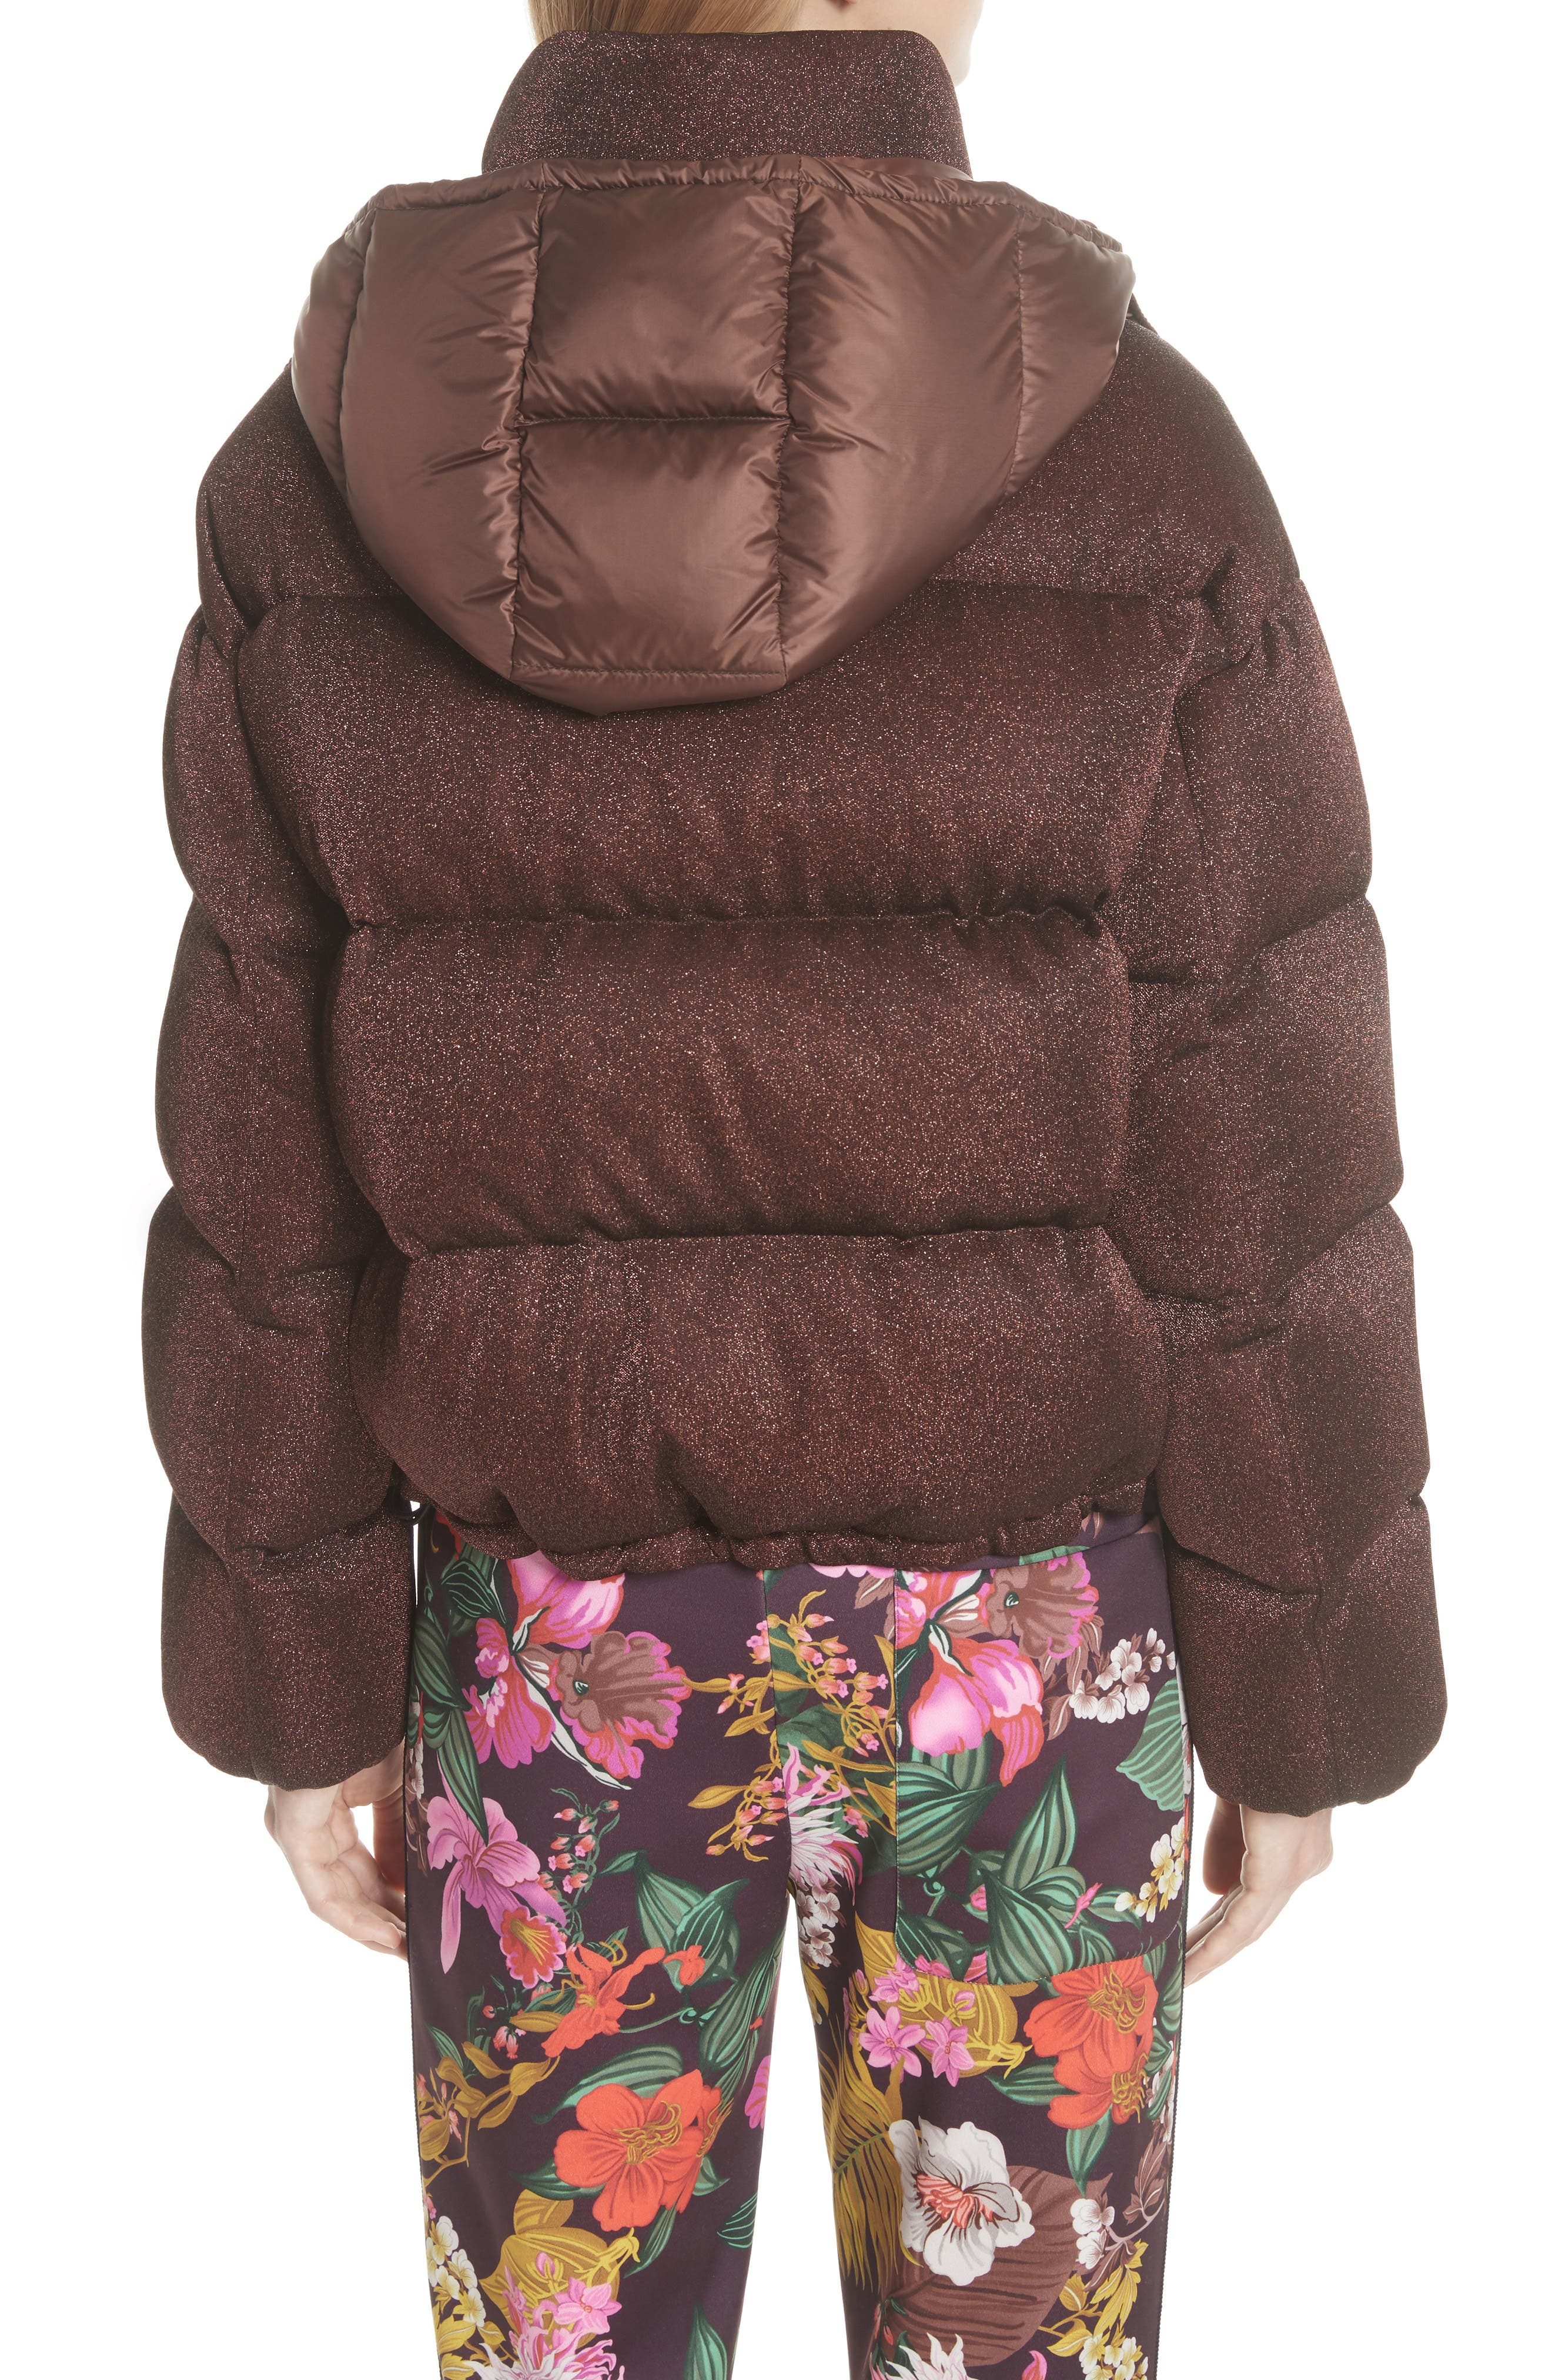 MONCLER, Caille Metallic Quilted Down Jacket, Alternate thumbnail 3, color, 224